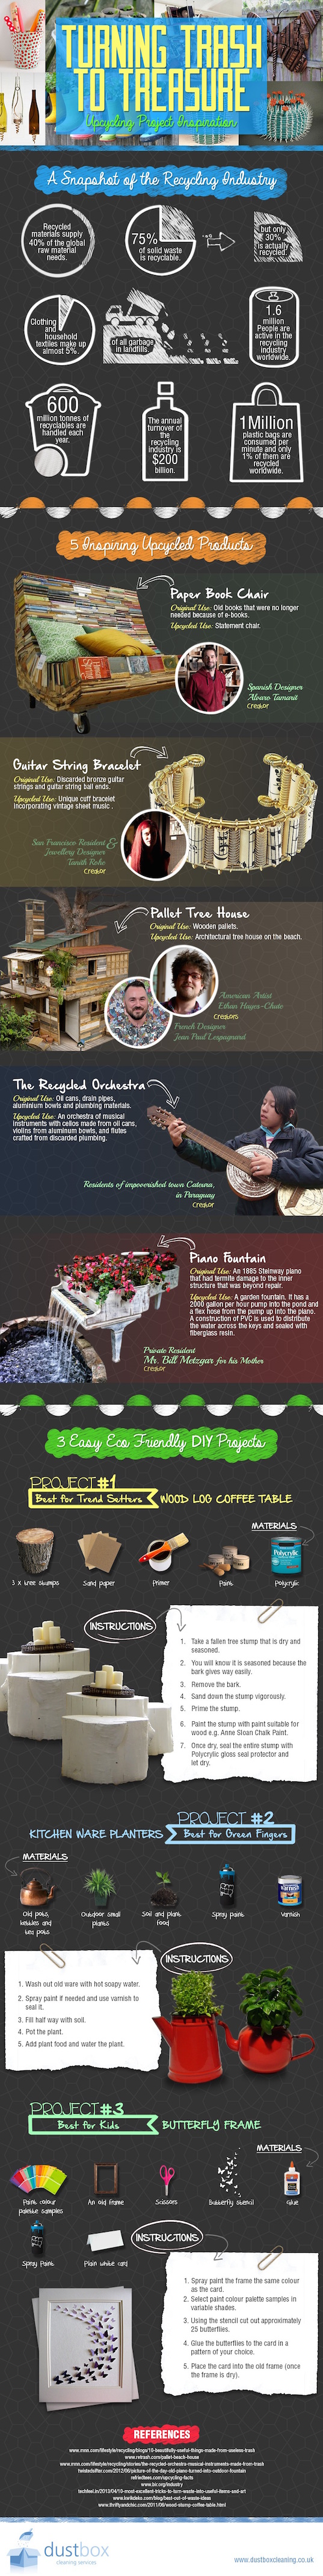 upcycling, DIY, infographic, dustbox, upcycled products, upcycled materials, recycling